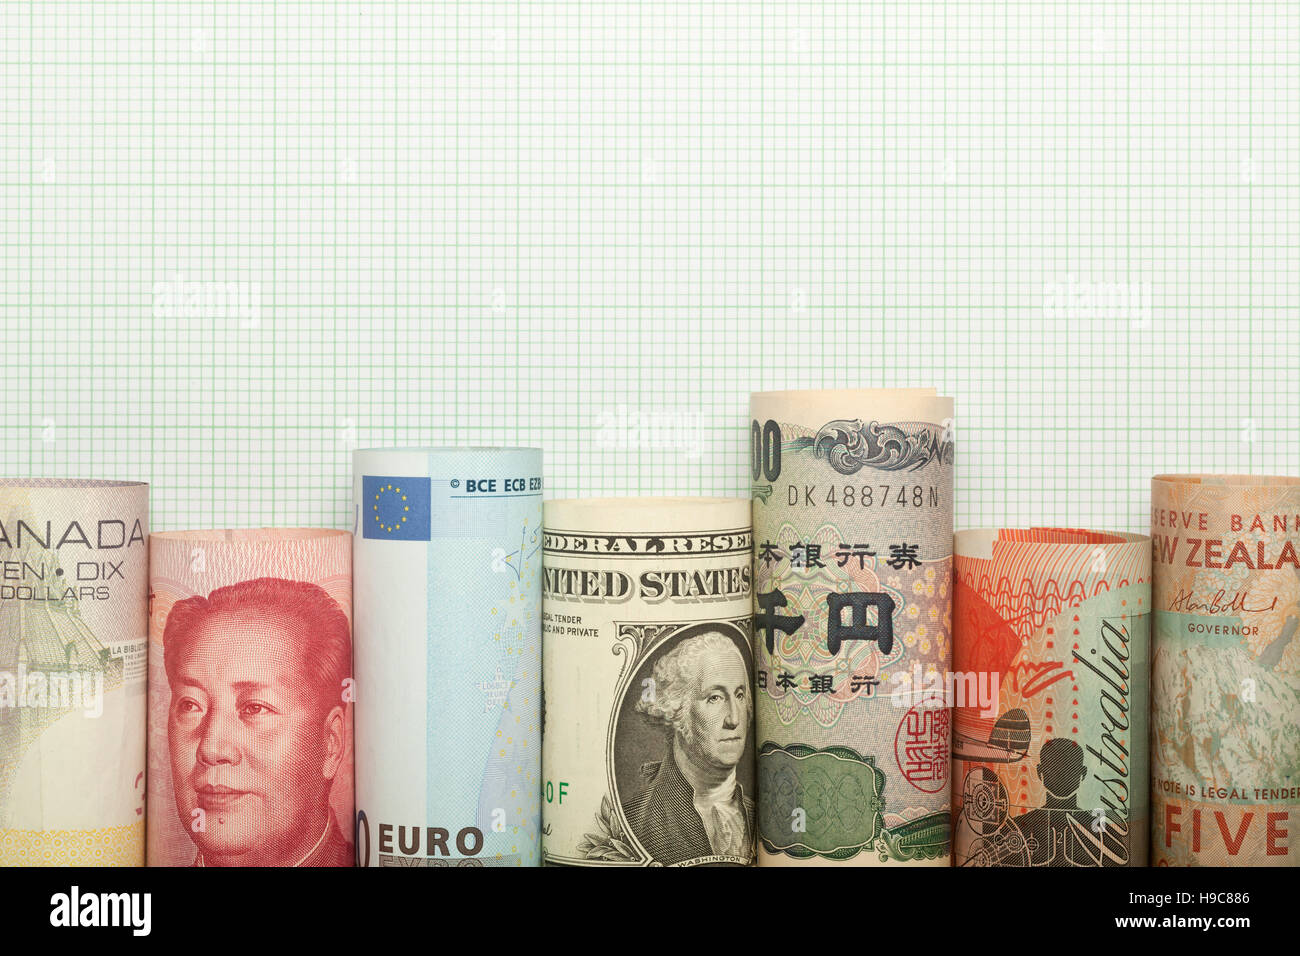 Different currencies forming a graph against grid background - Stock Image